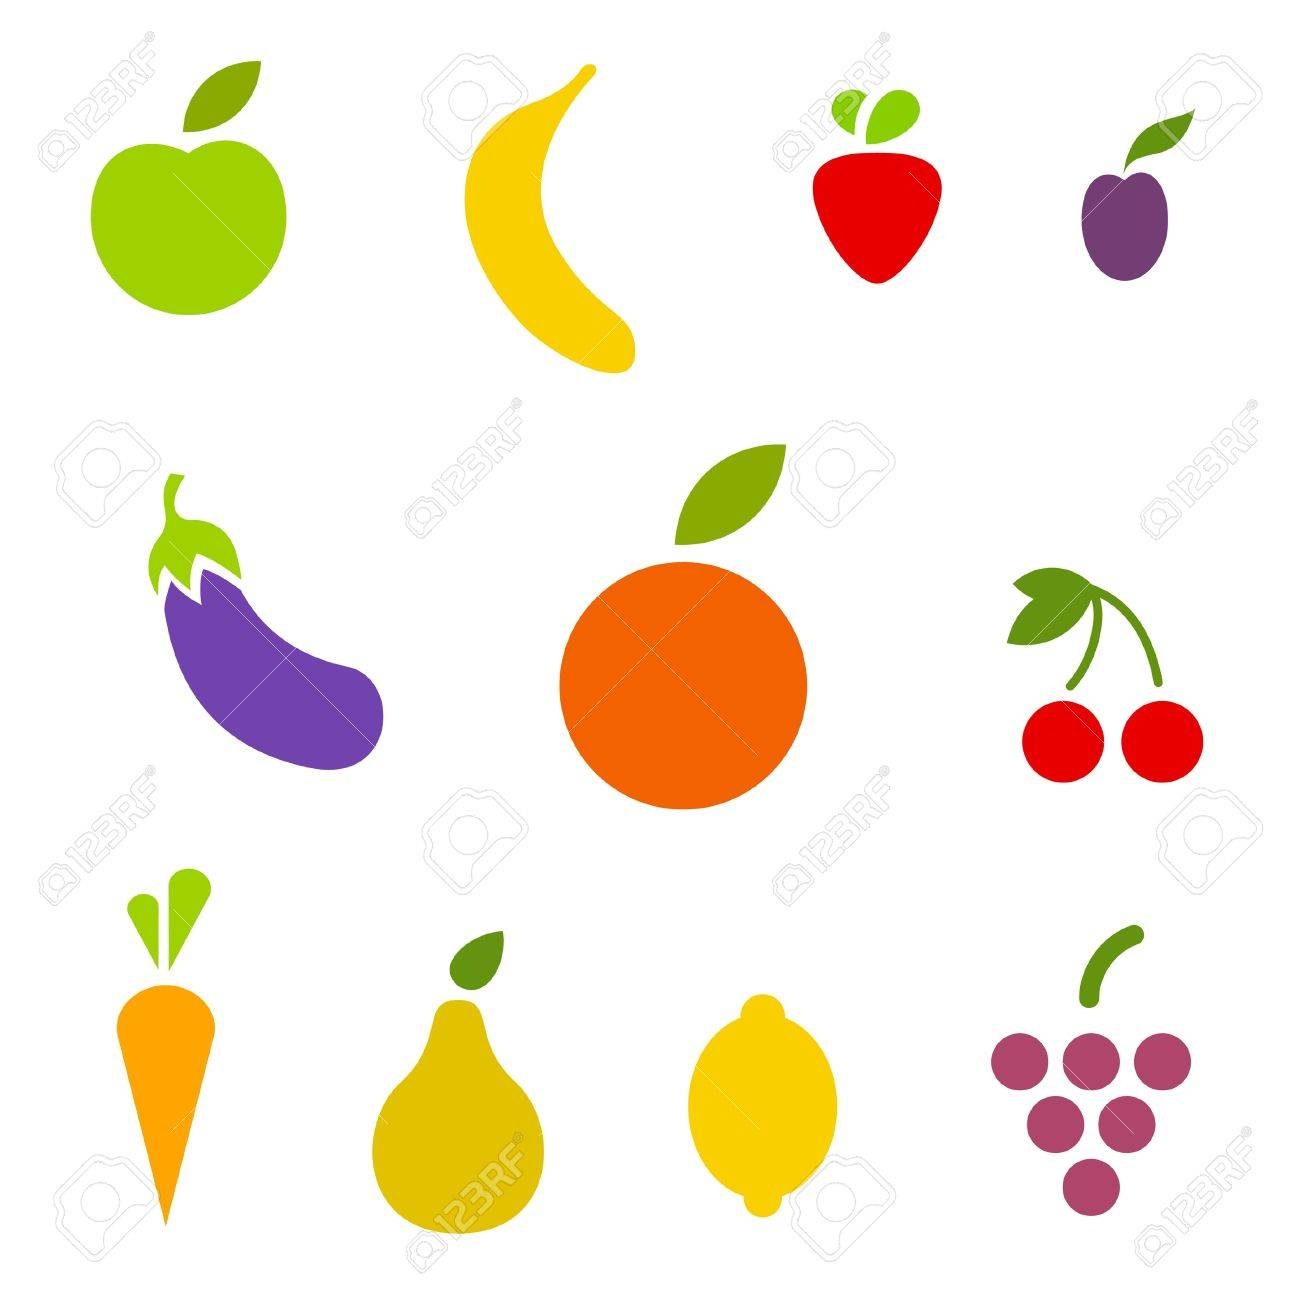 fruits and vegetables icon set vector editable royalty free